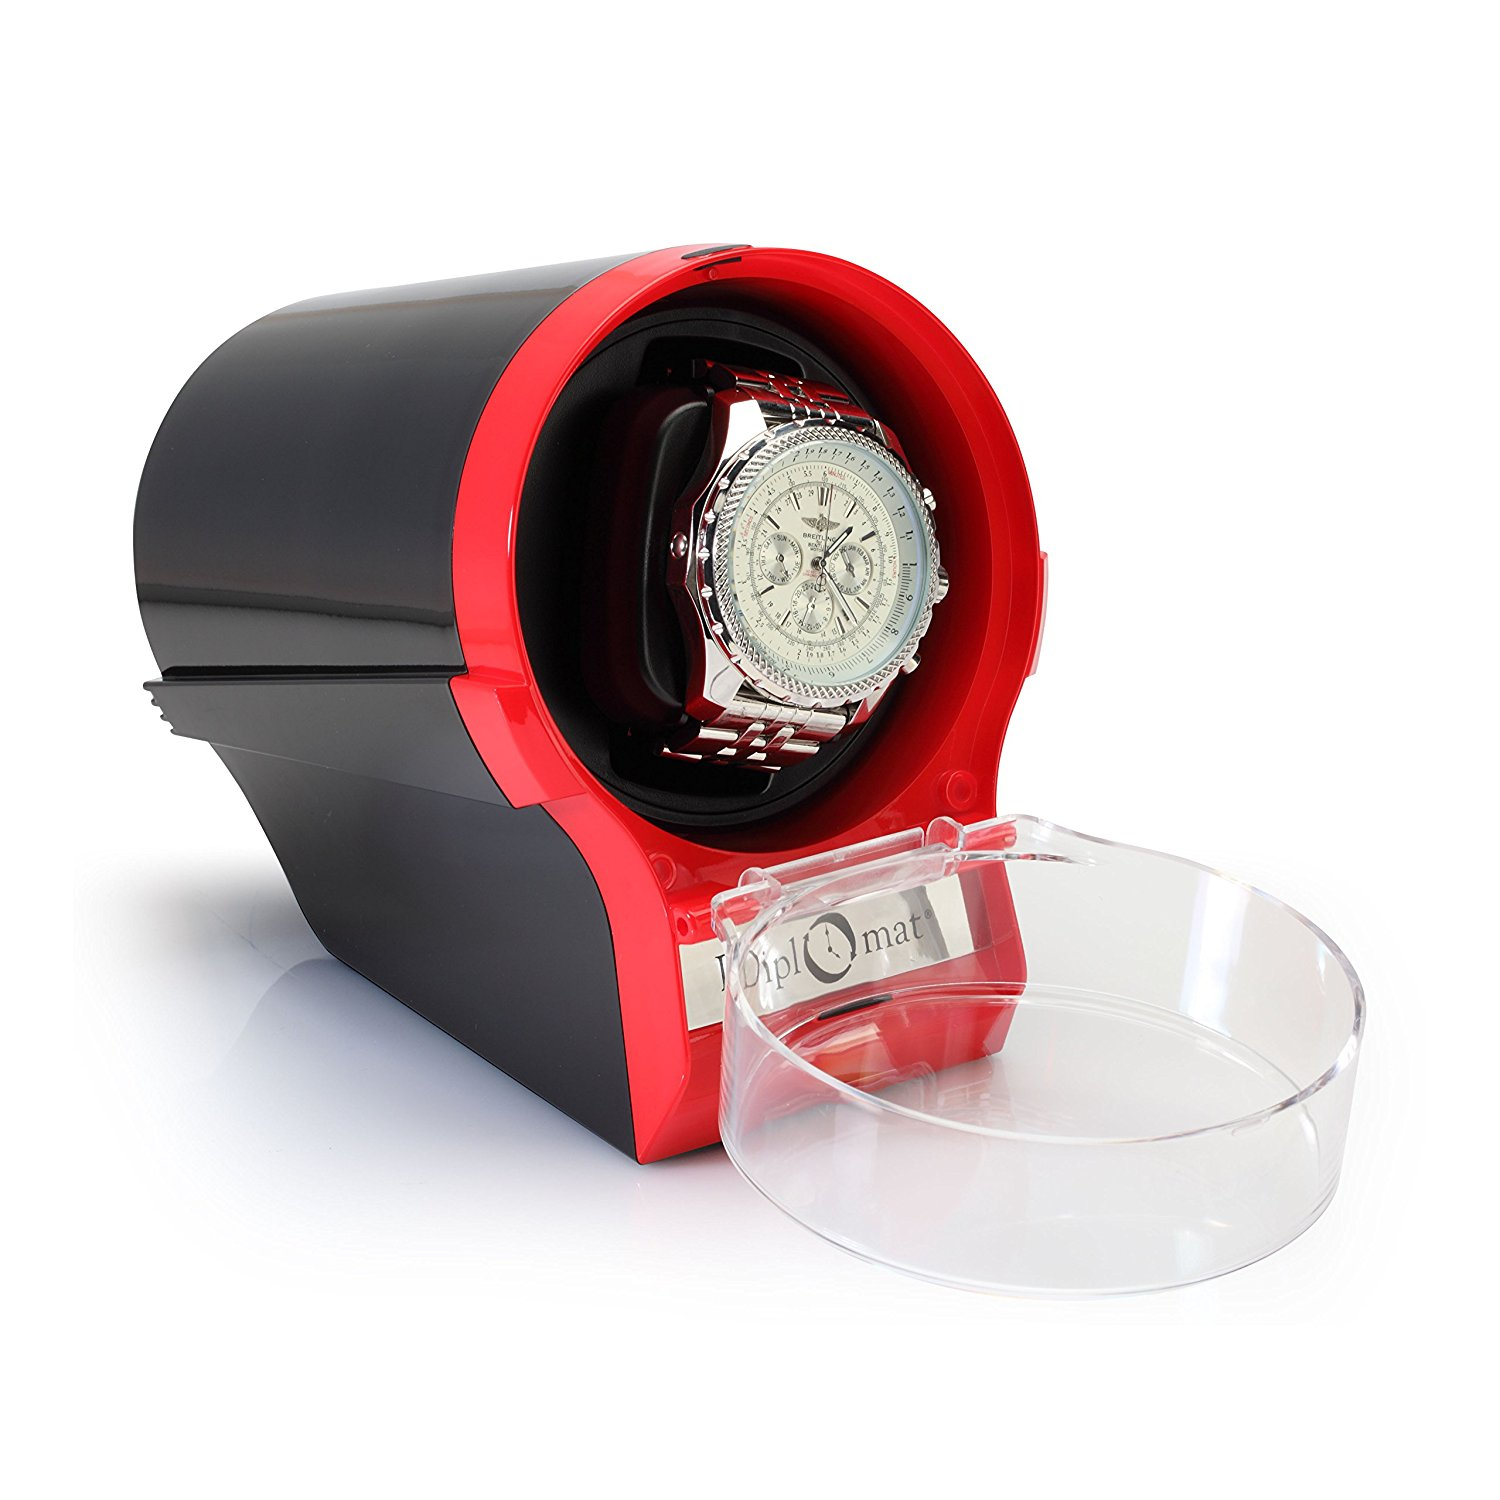 Diplomat Single Red/Black Watch Winder with 12 Programmed Settings and Japanese Mabuchi Motor